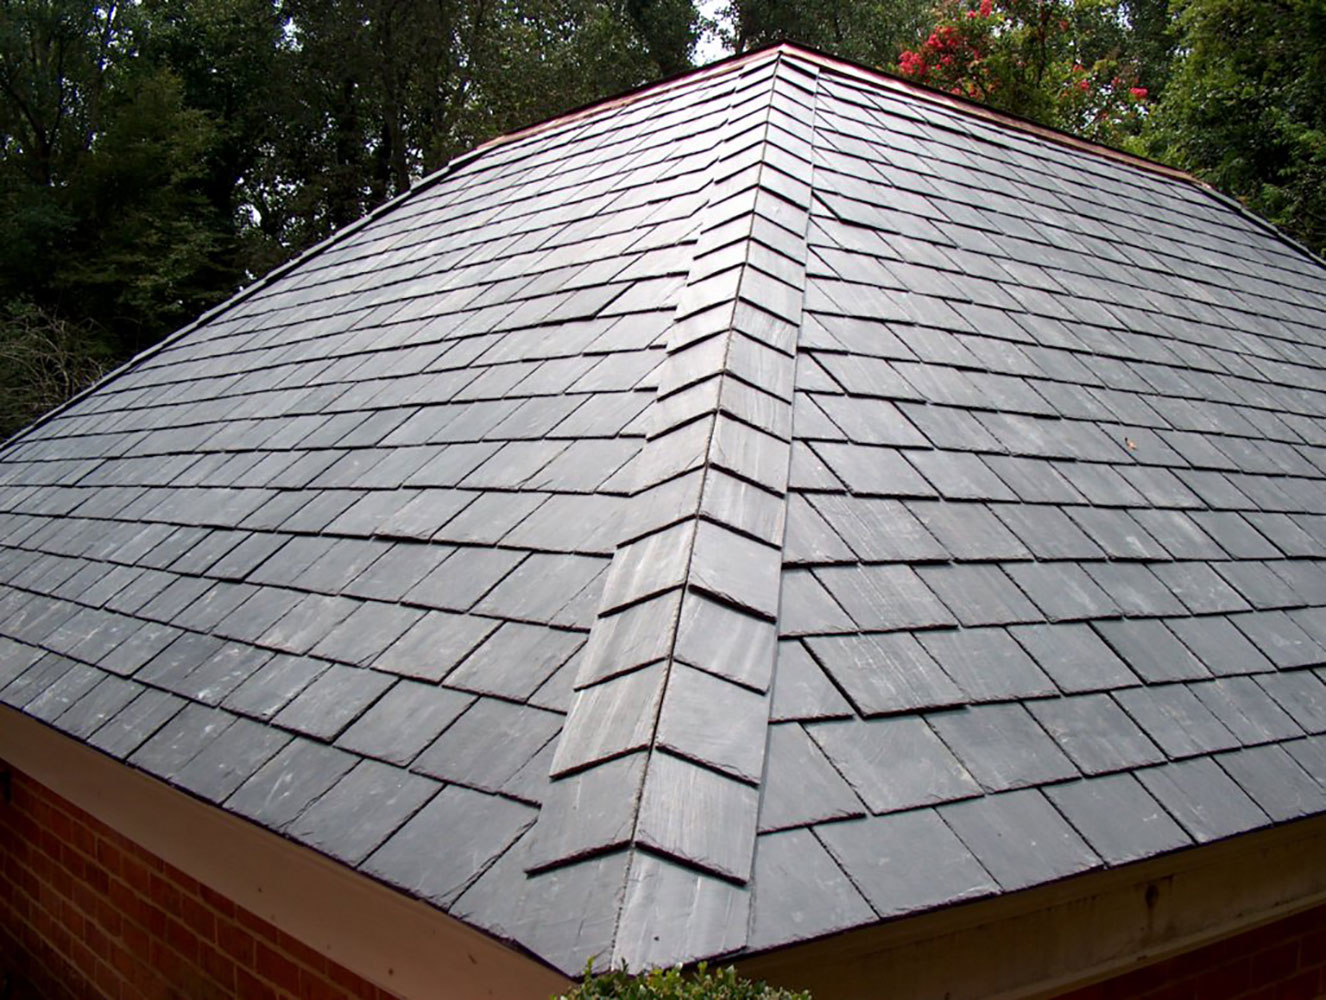 One Approach to Slate Roofing